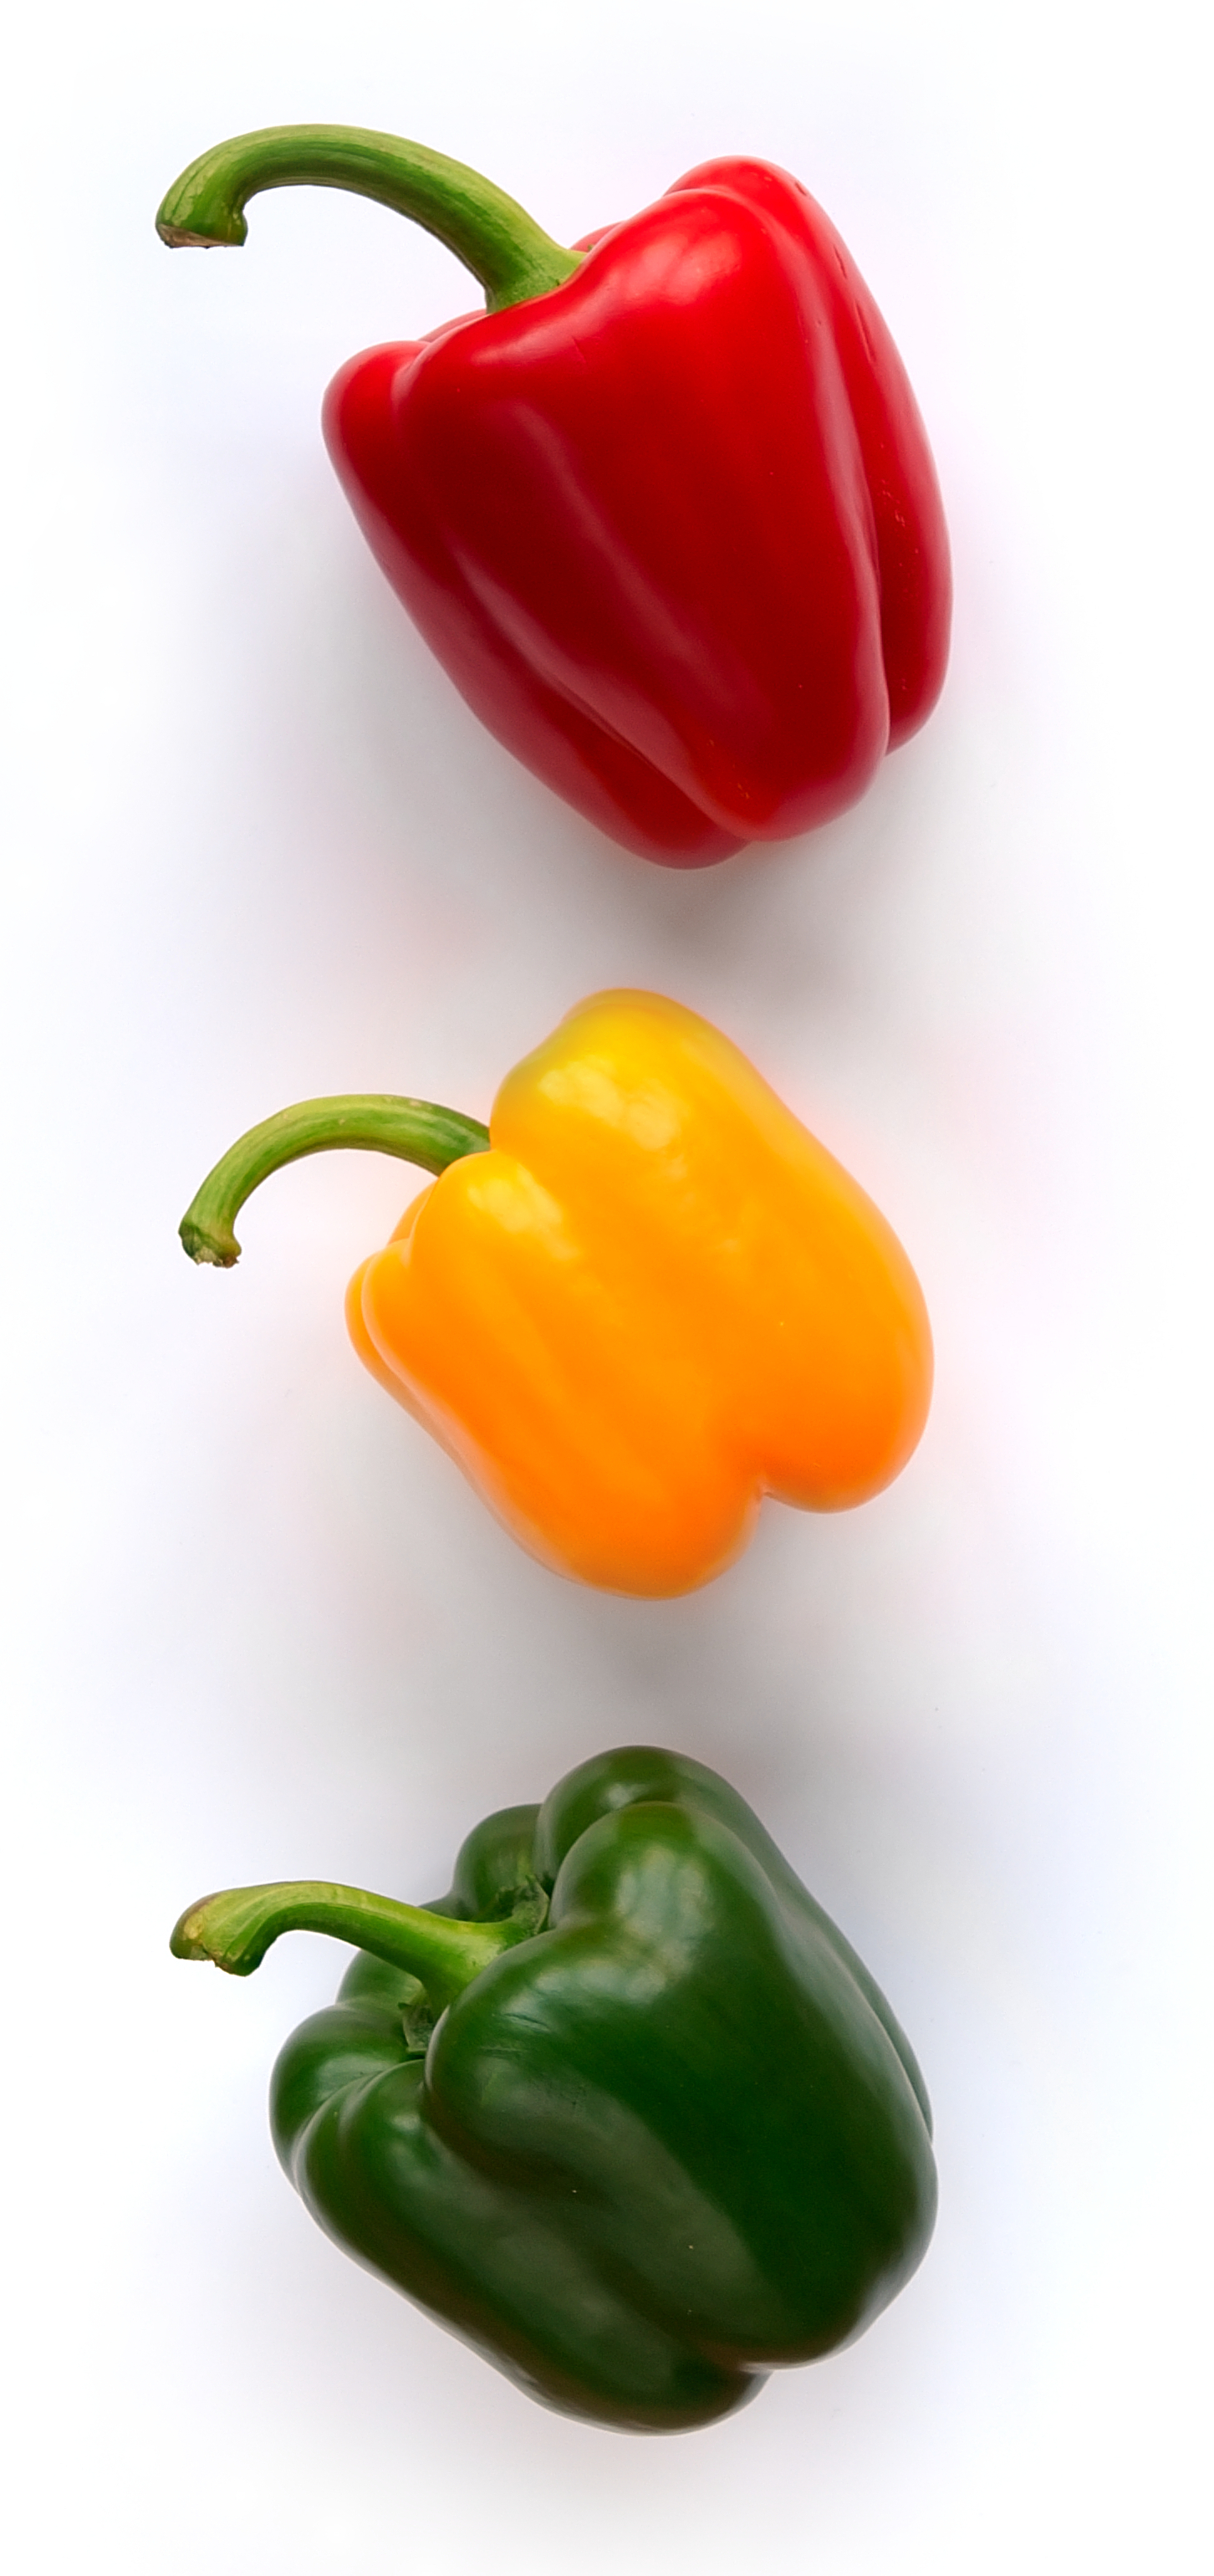 Bell peppers -- colorful, grain-free vegetables for a healthy , gluten-free vegetarian diet.